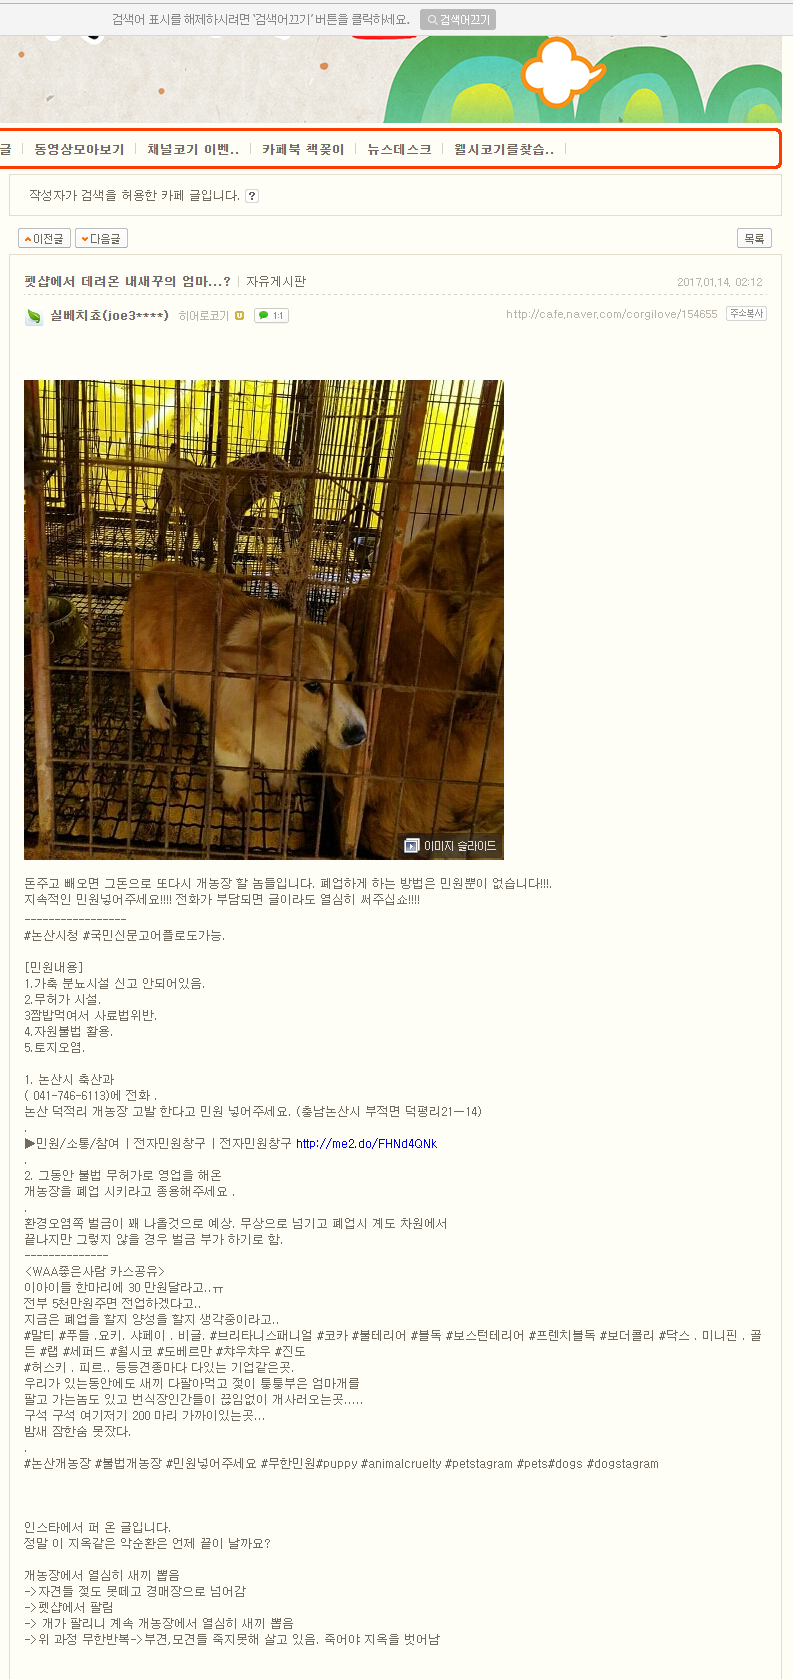 Nonsan Deokjeok-ri Dog Farm Naver post 011417